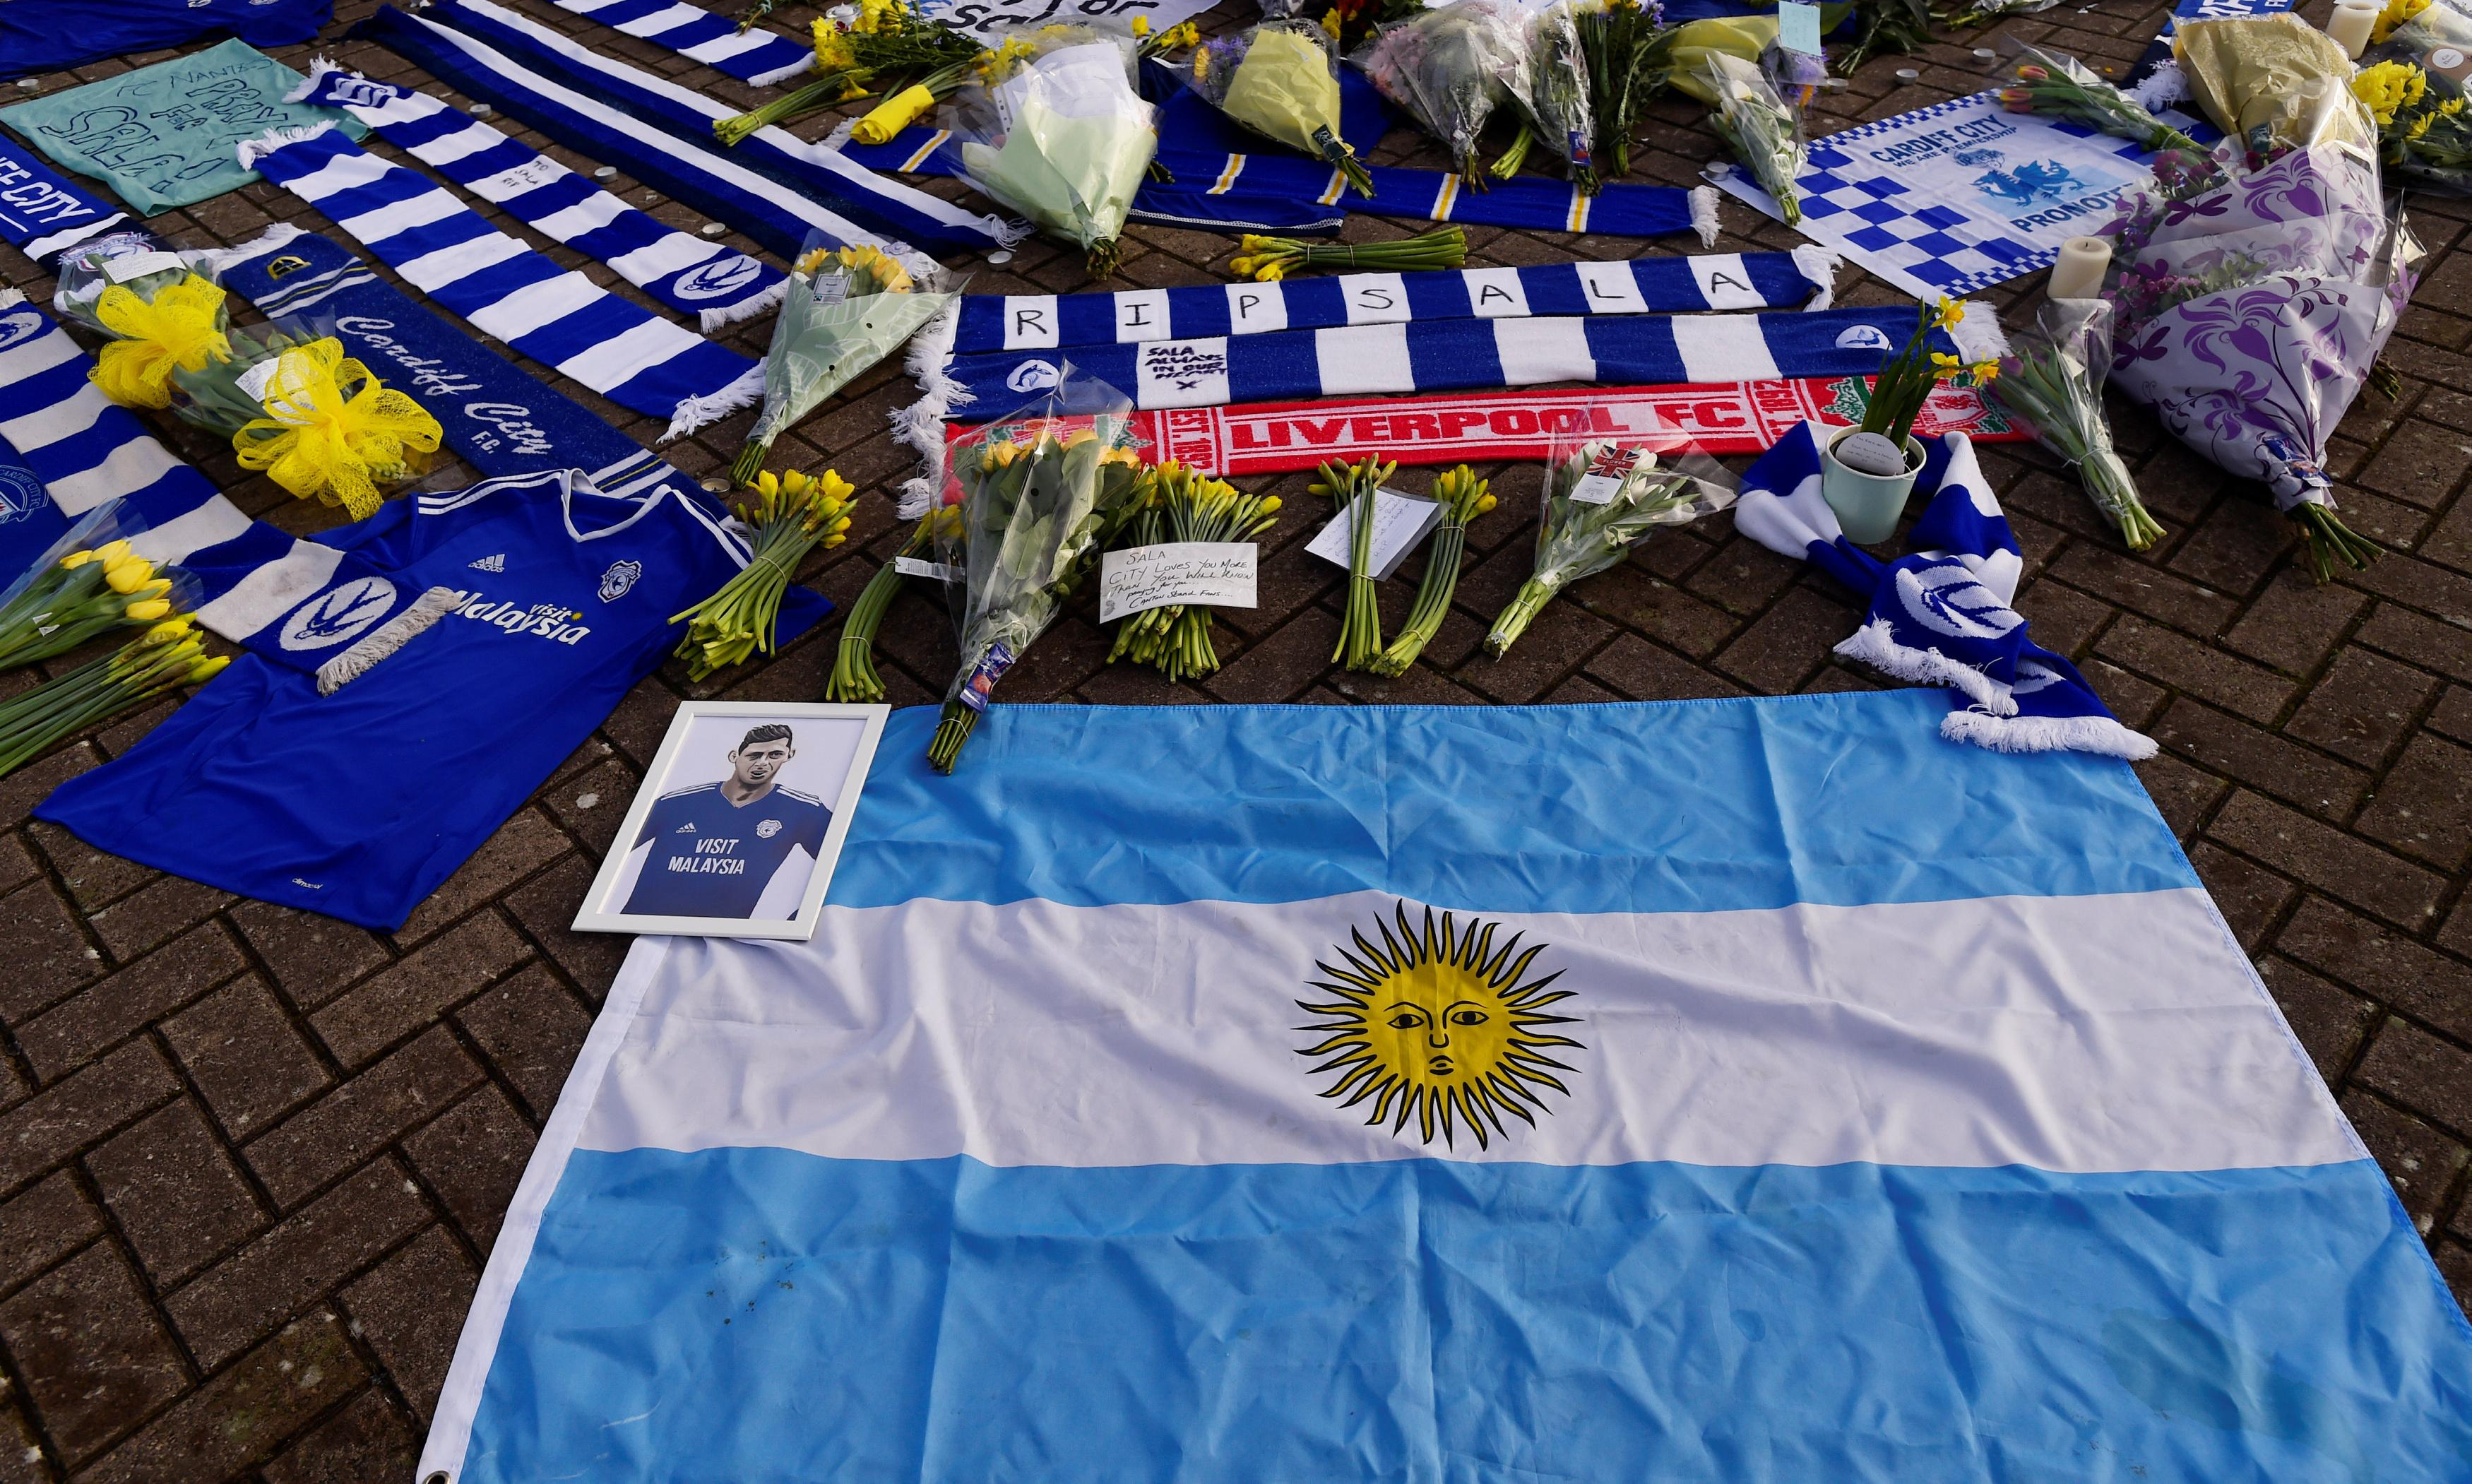 Emiliano Sala dominates news, thoughts and prayers in Argentina